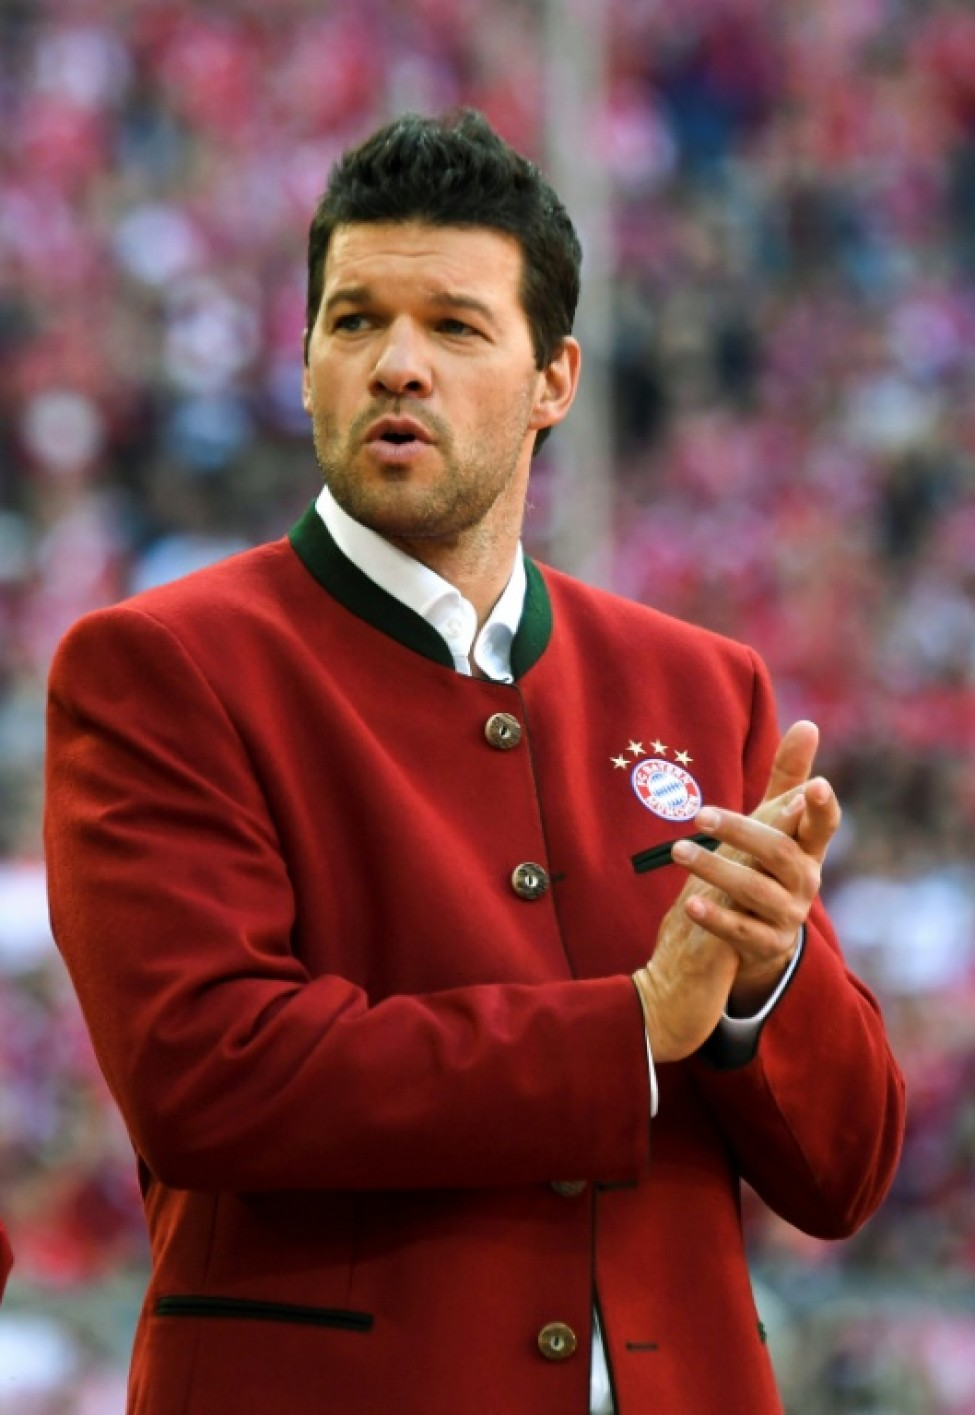 Former Bayern Munich captain Michael Ballack, 42, has been a sharp critic of Germany\'s head coach Joachim Loew since the pair had a public falling out in 2008, when Ballack accused Loew of not showing enough respect to senior national team players.